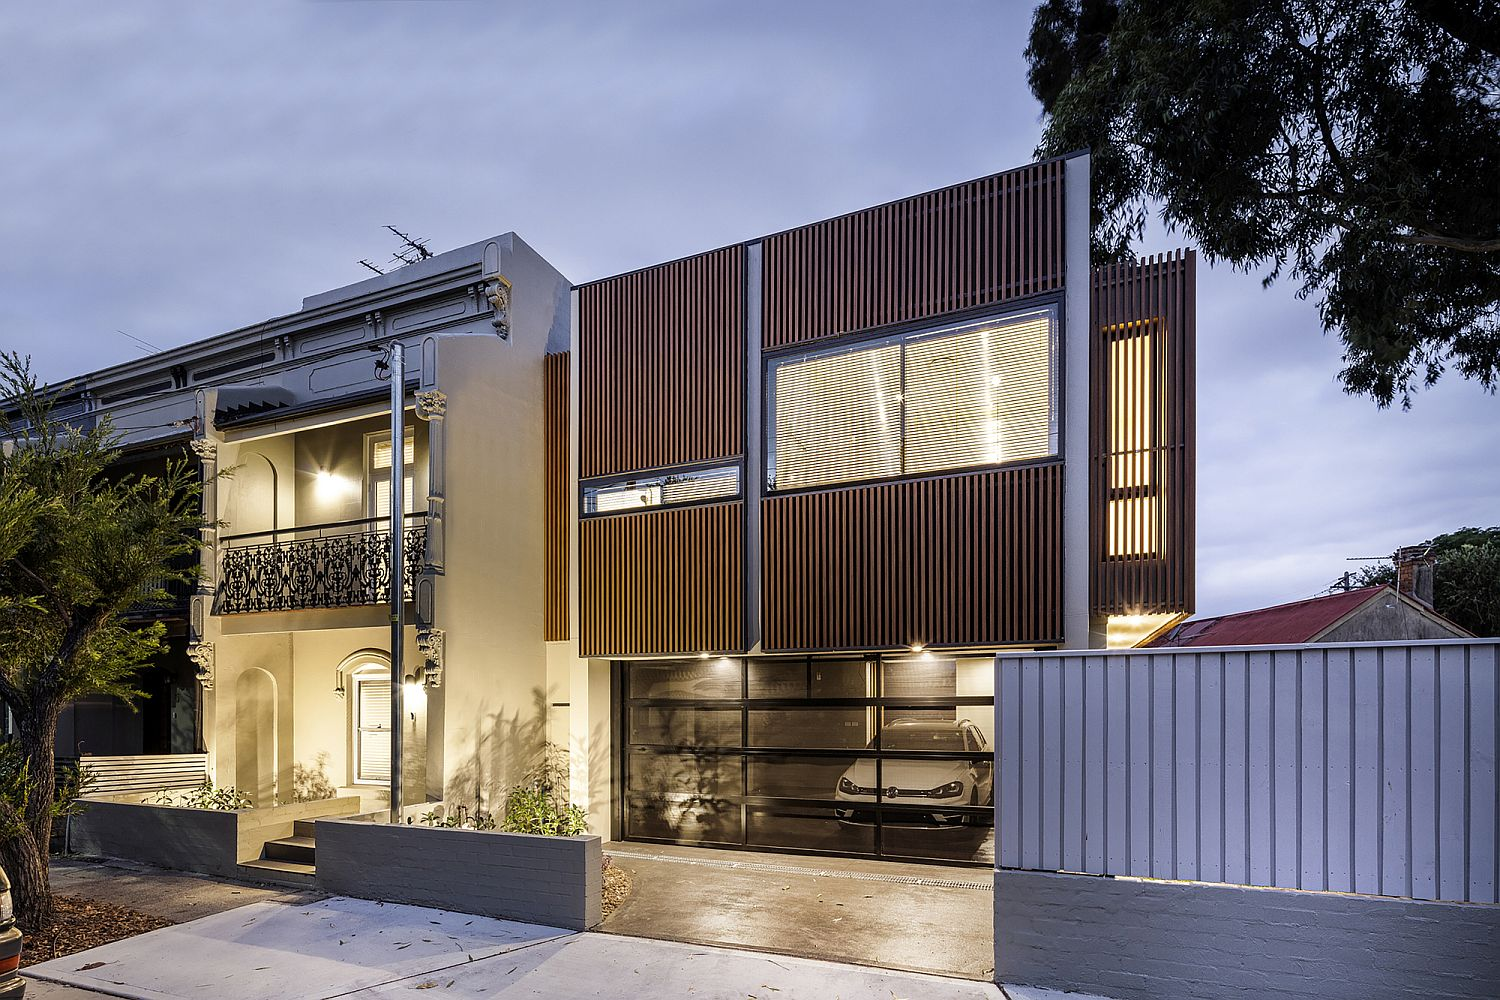 Street-facade-of-the-house-after-sunset